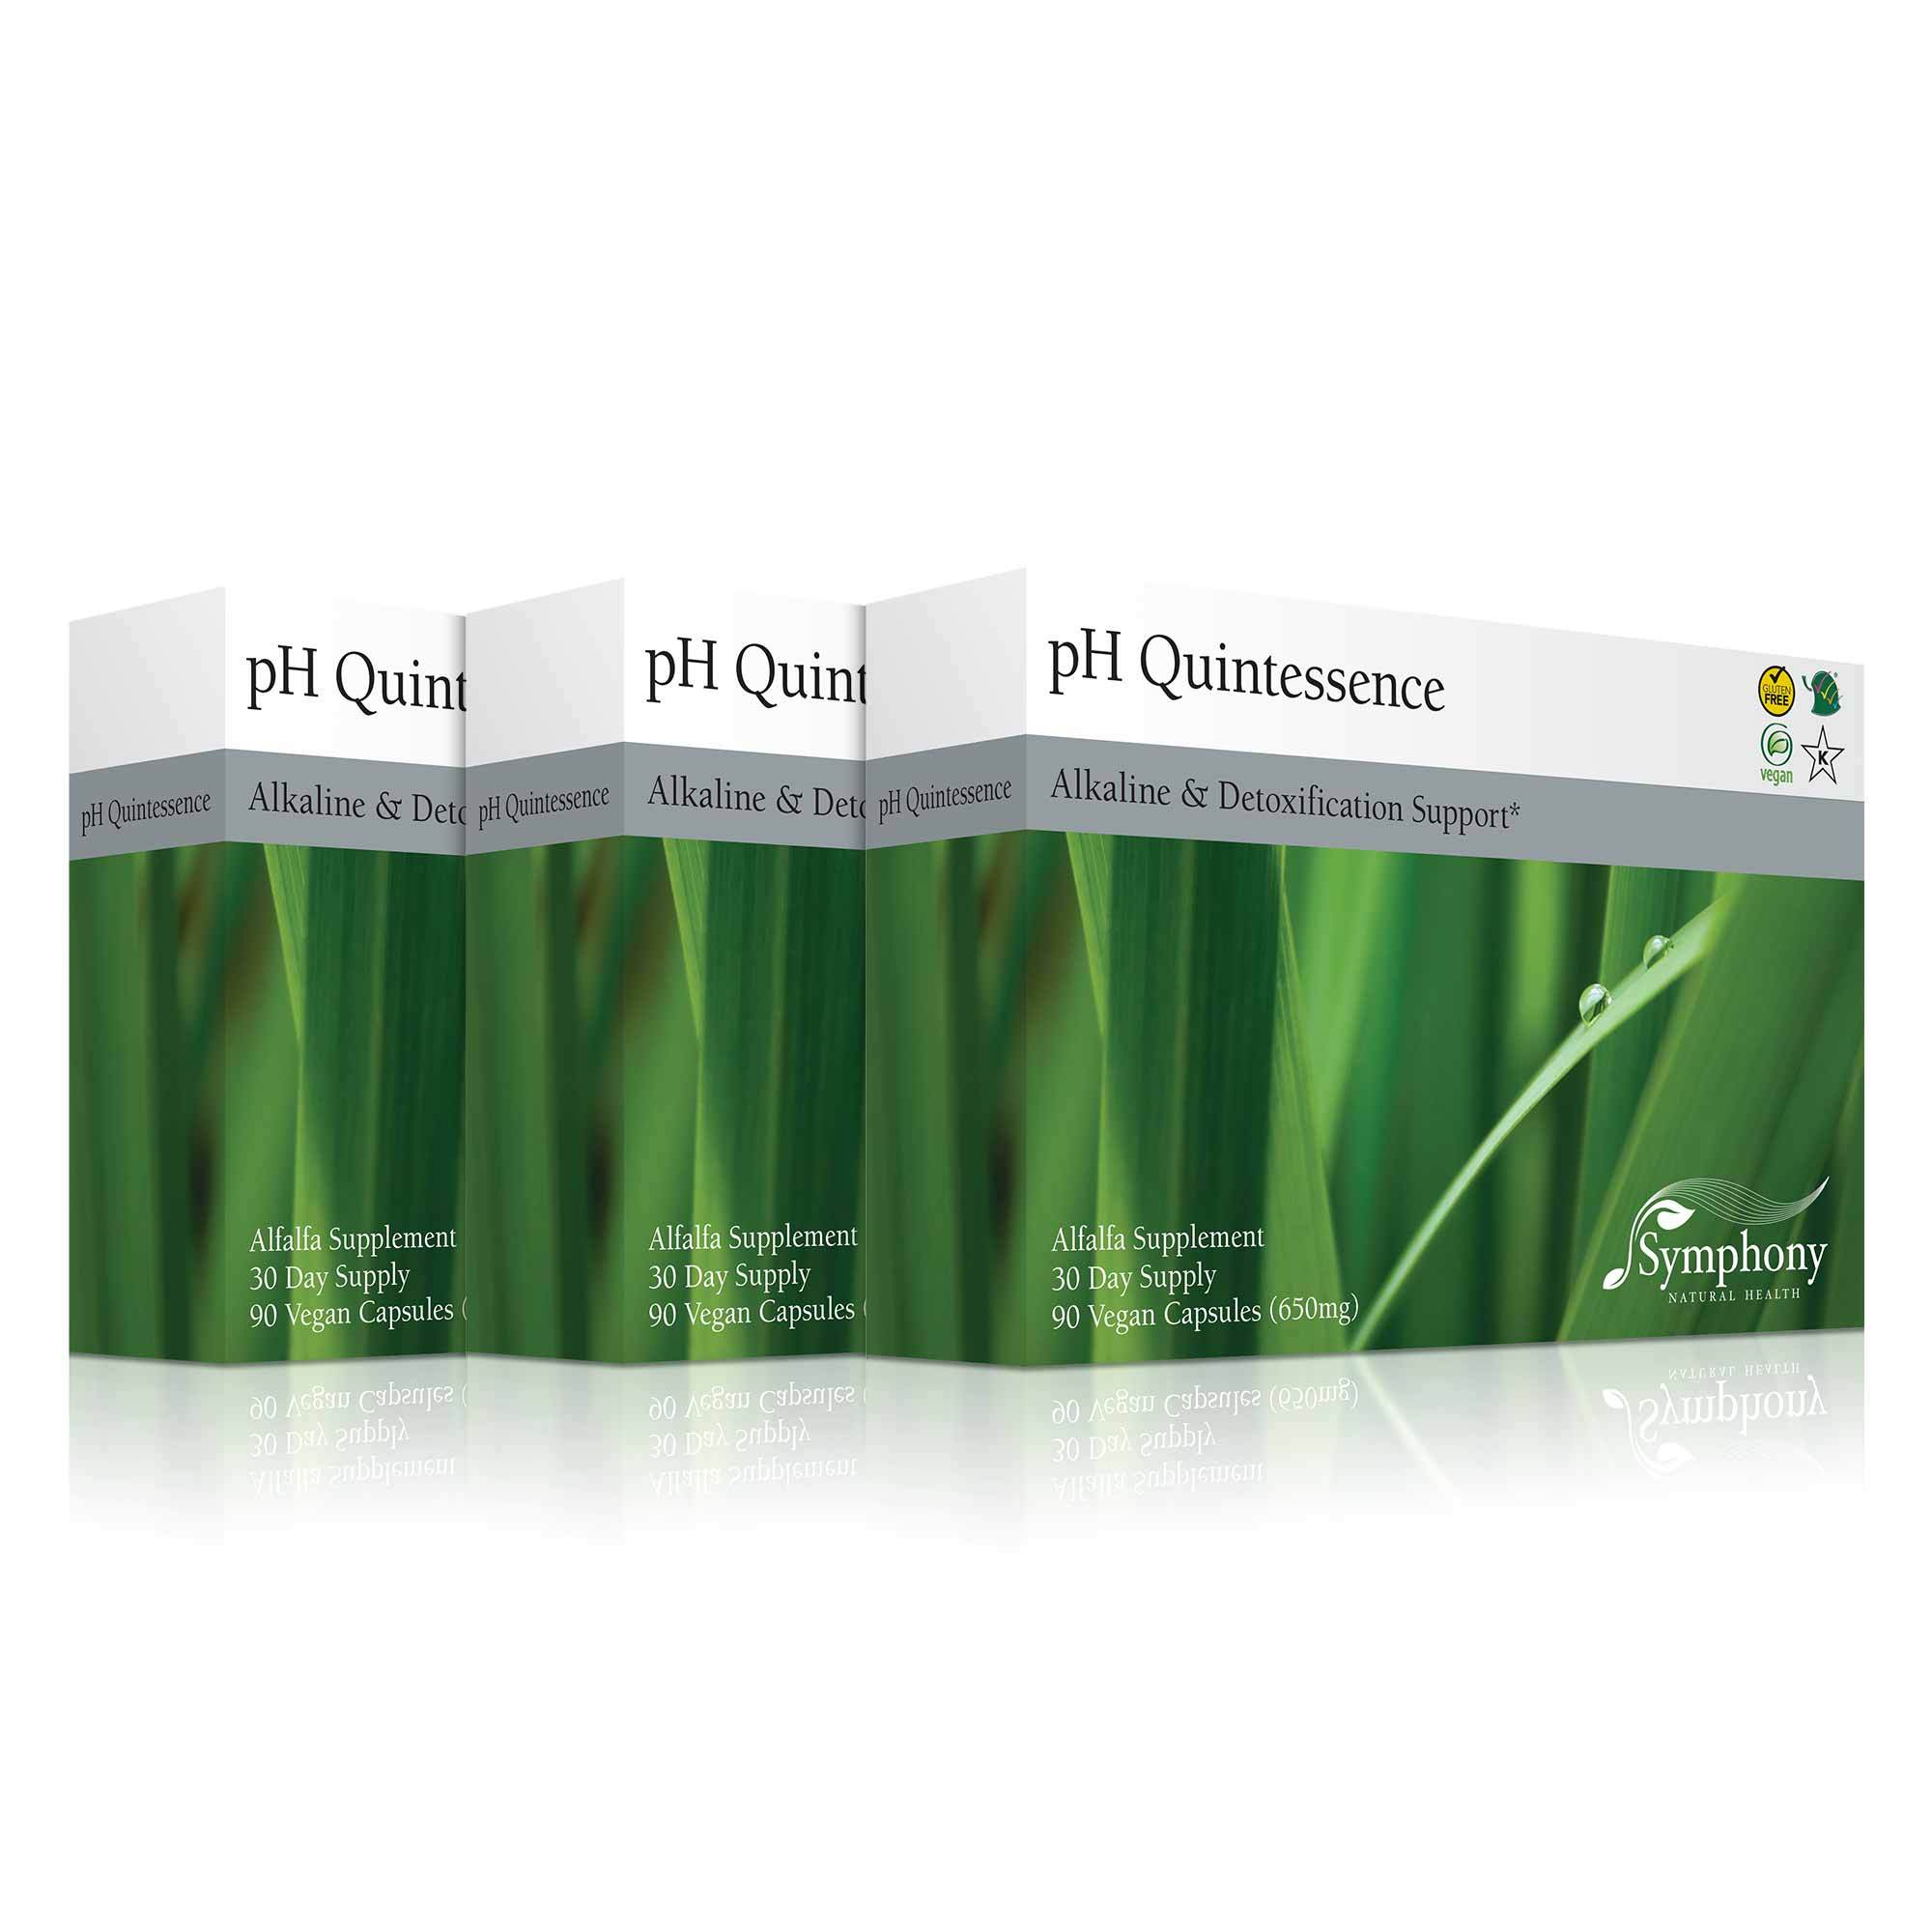 pH Quintessence Welcome Pack